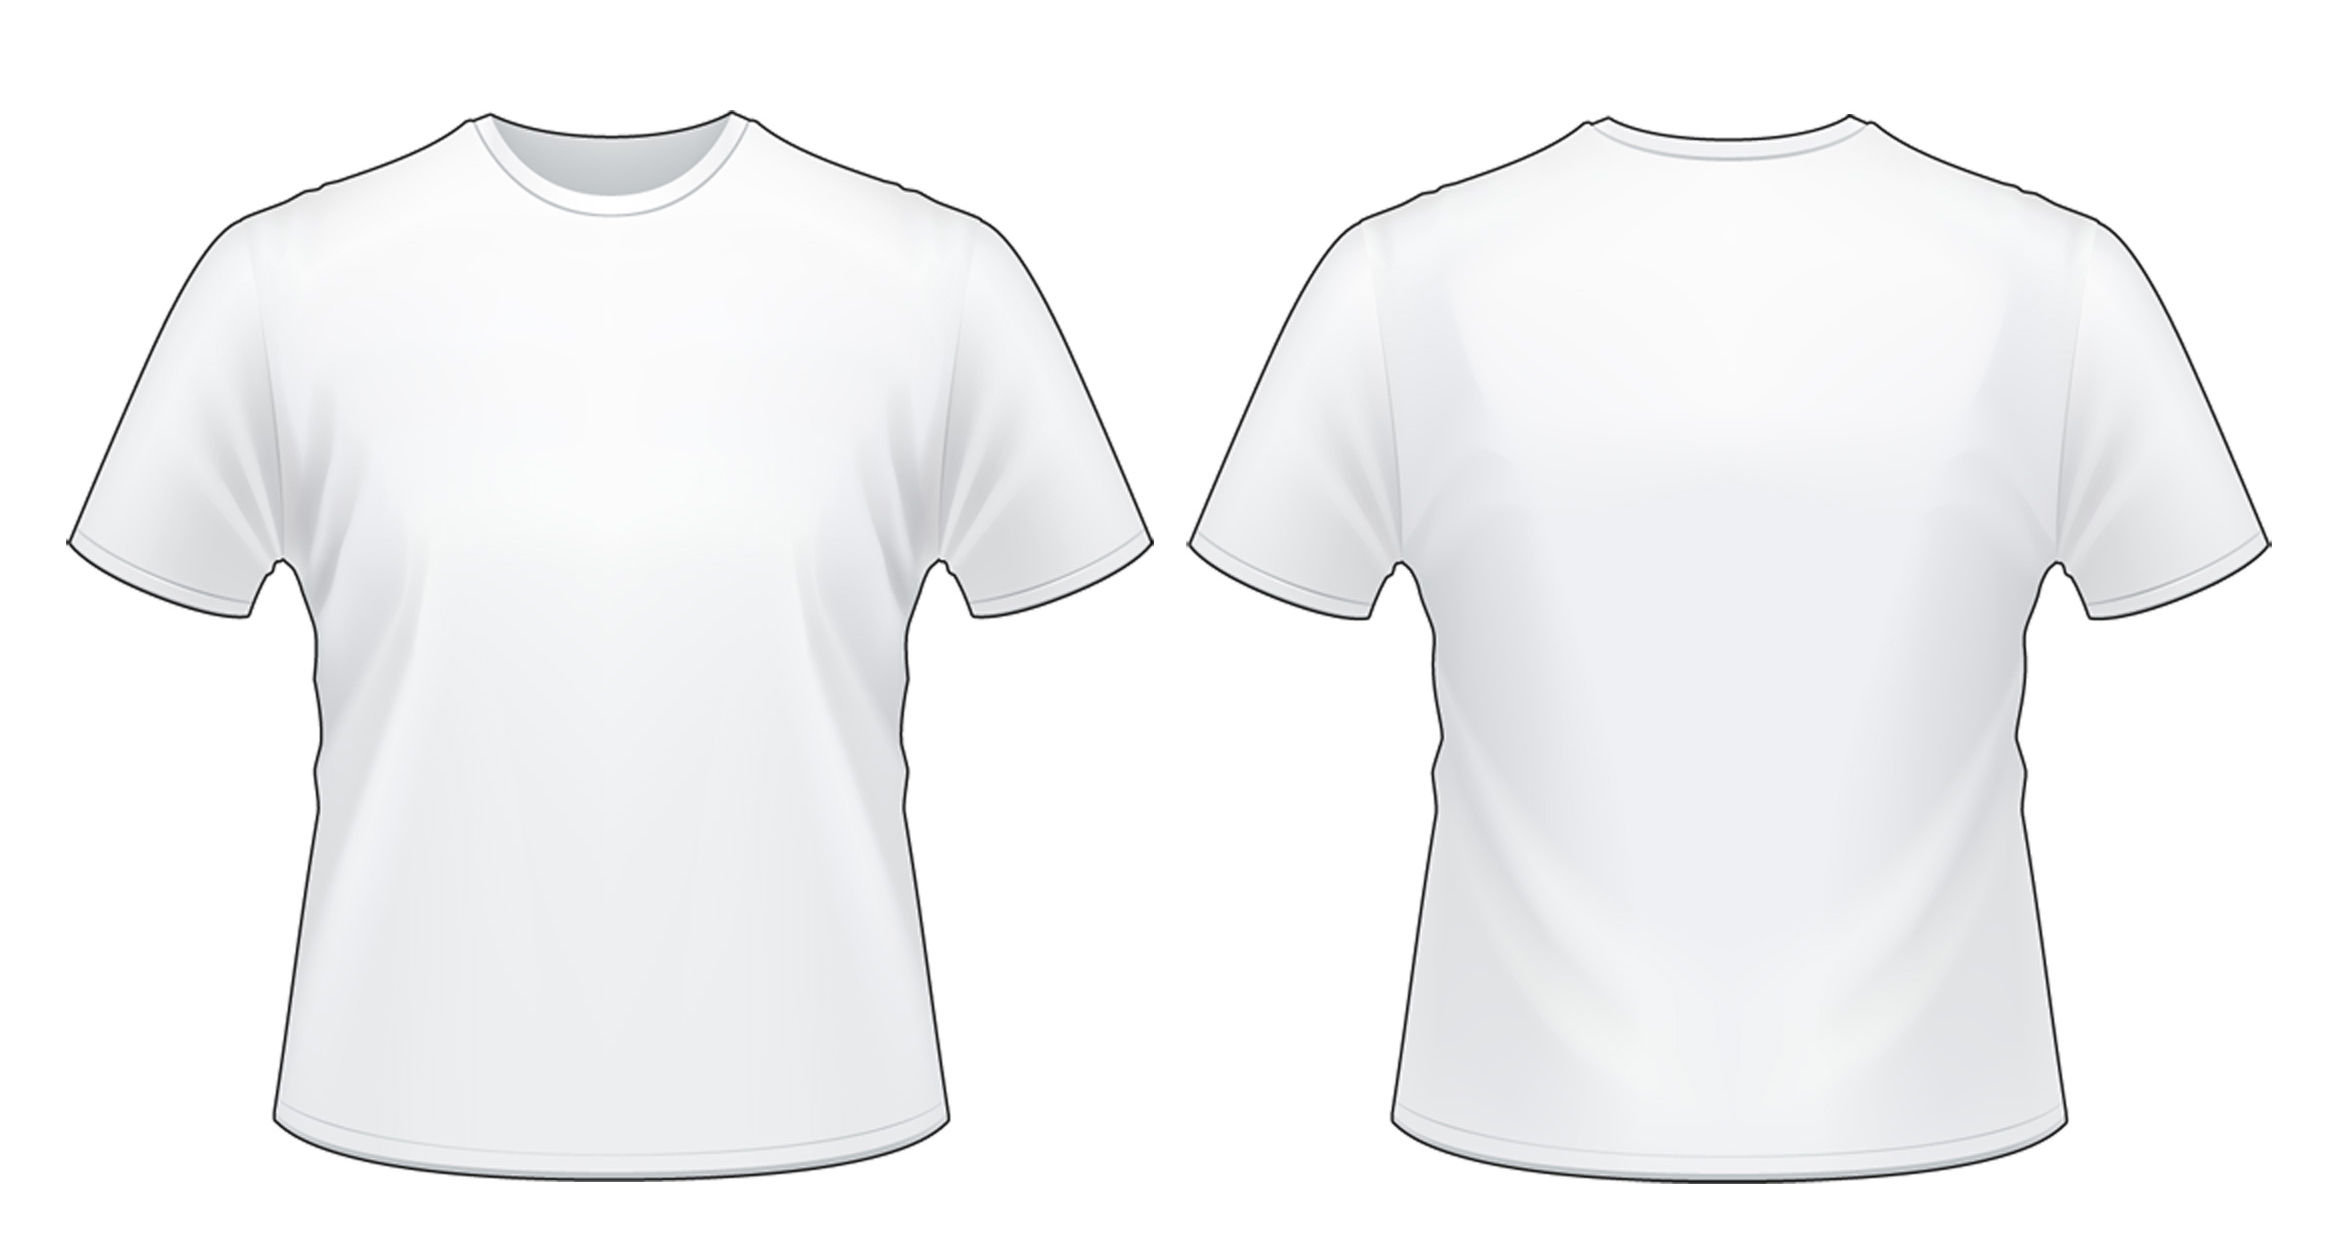 white t shirt with pocket template